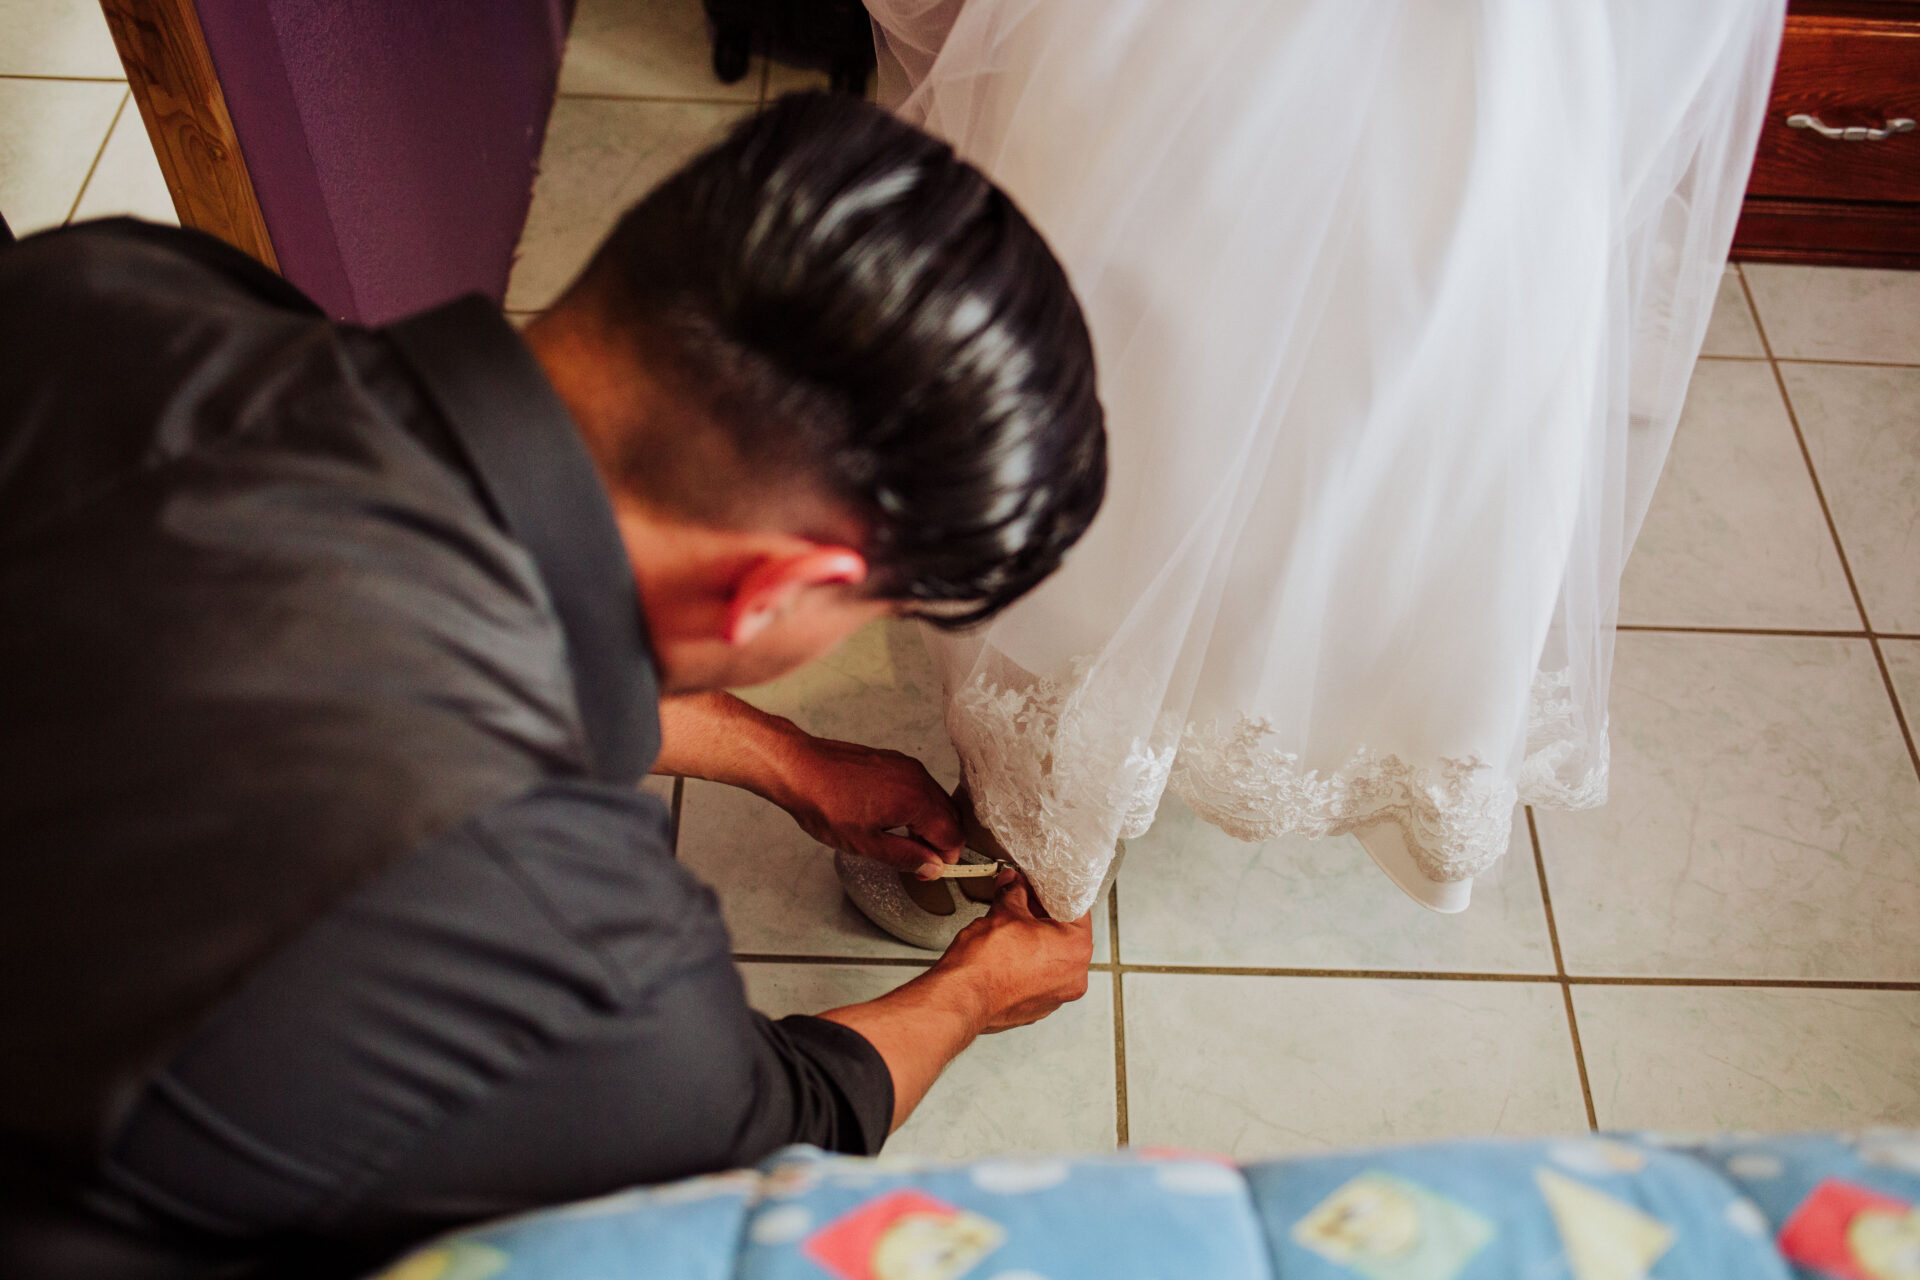 javier_noriega_fotografo_bodas_zacatecas_chihuahua_wedding_photographer8